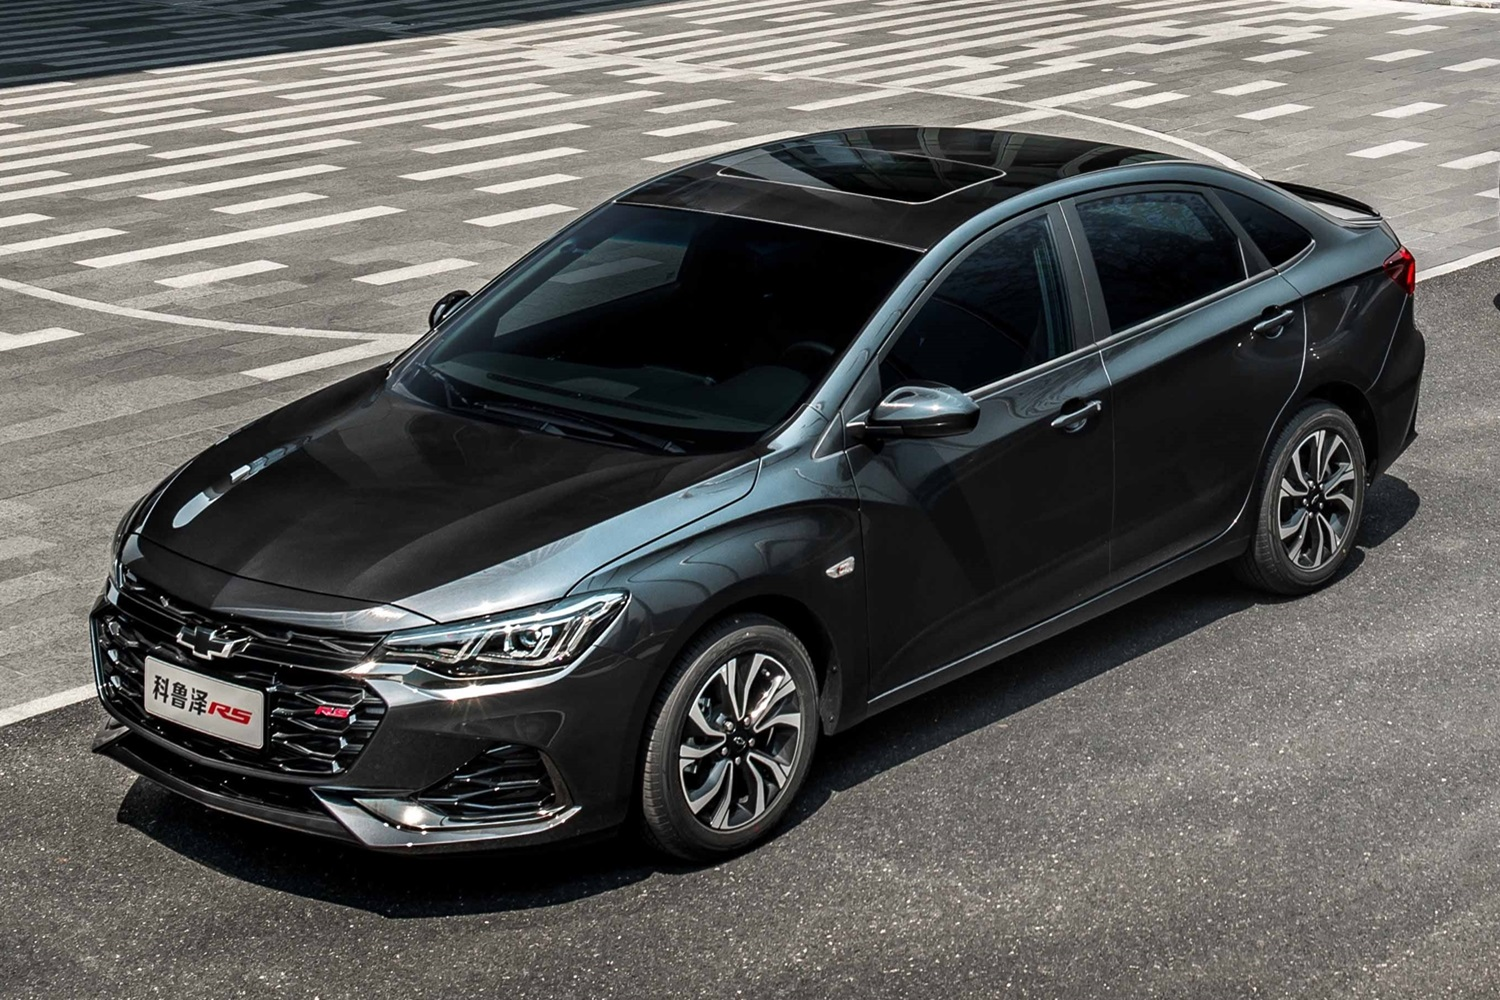 2021 Chevrolet Monza RS Mild hybrid China exterior 02